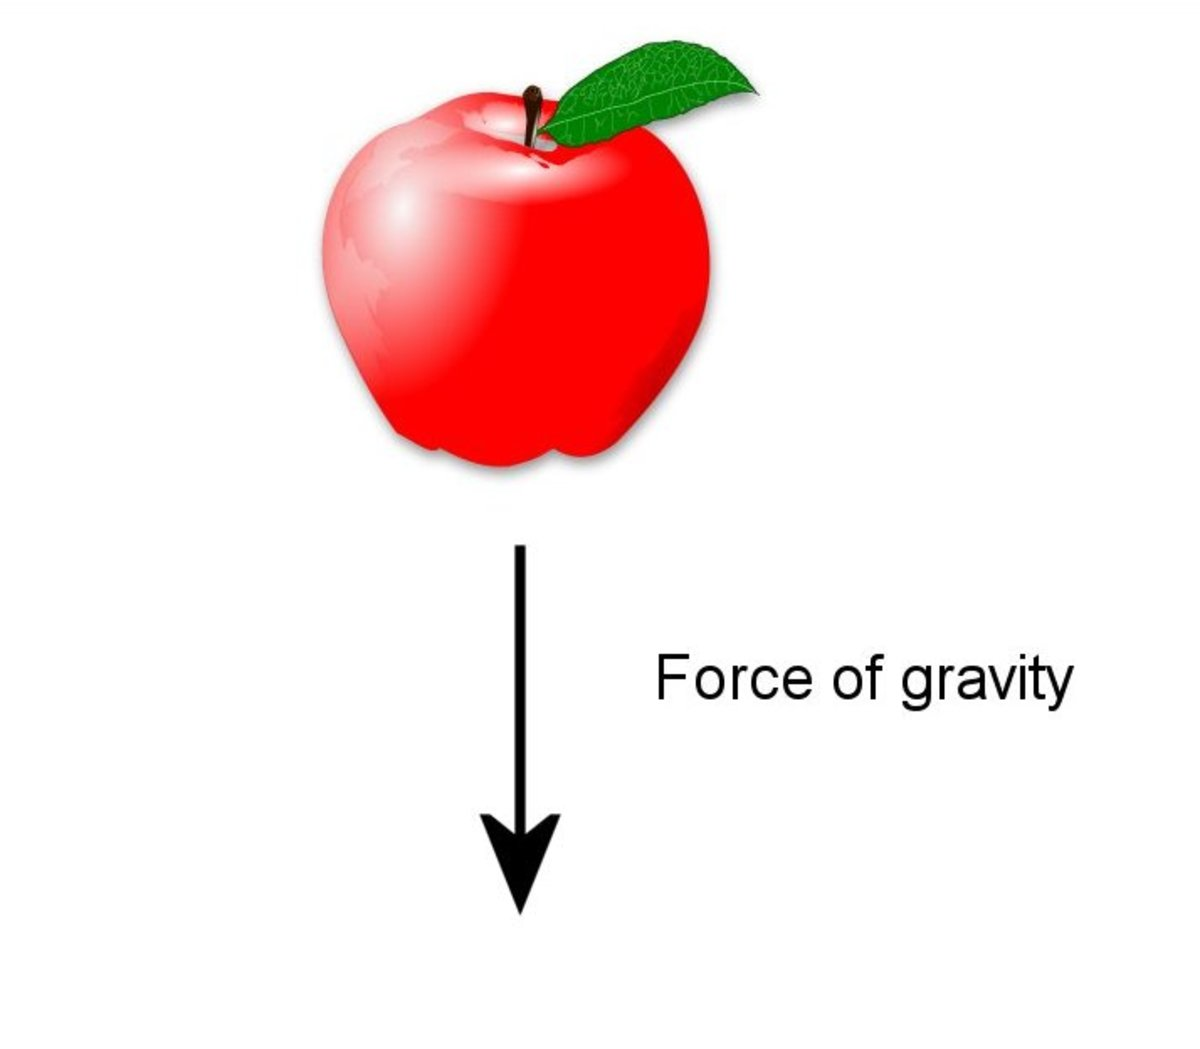 Drag Force and the Terminal Velocity of a Human